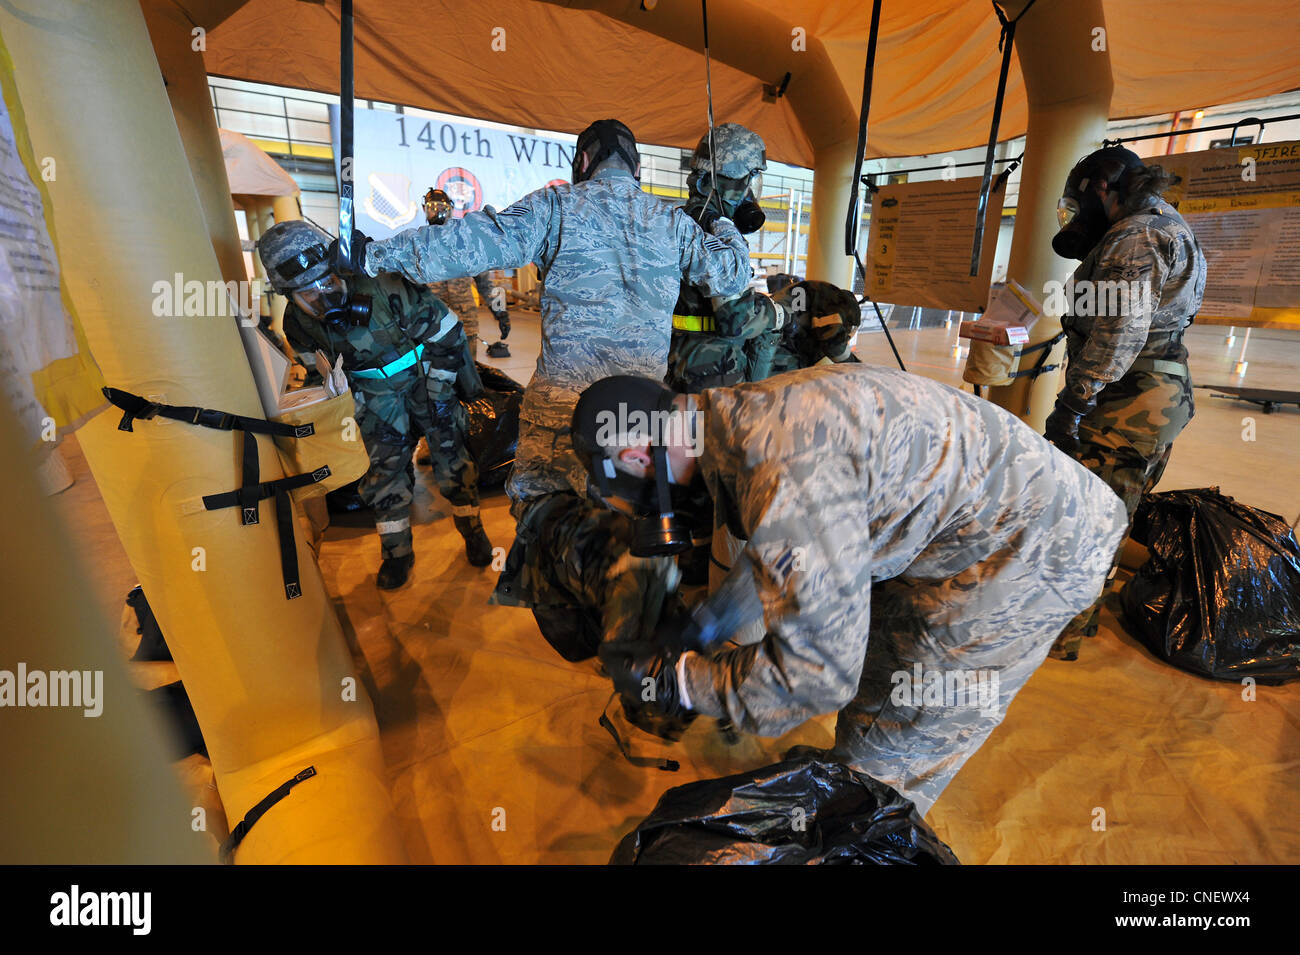 Members of the 140th Wing, help each other remove their Chemical Protective Overgarment while processing through - Stock Image